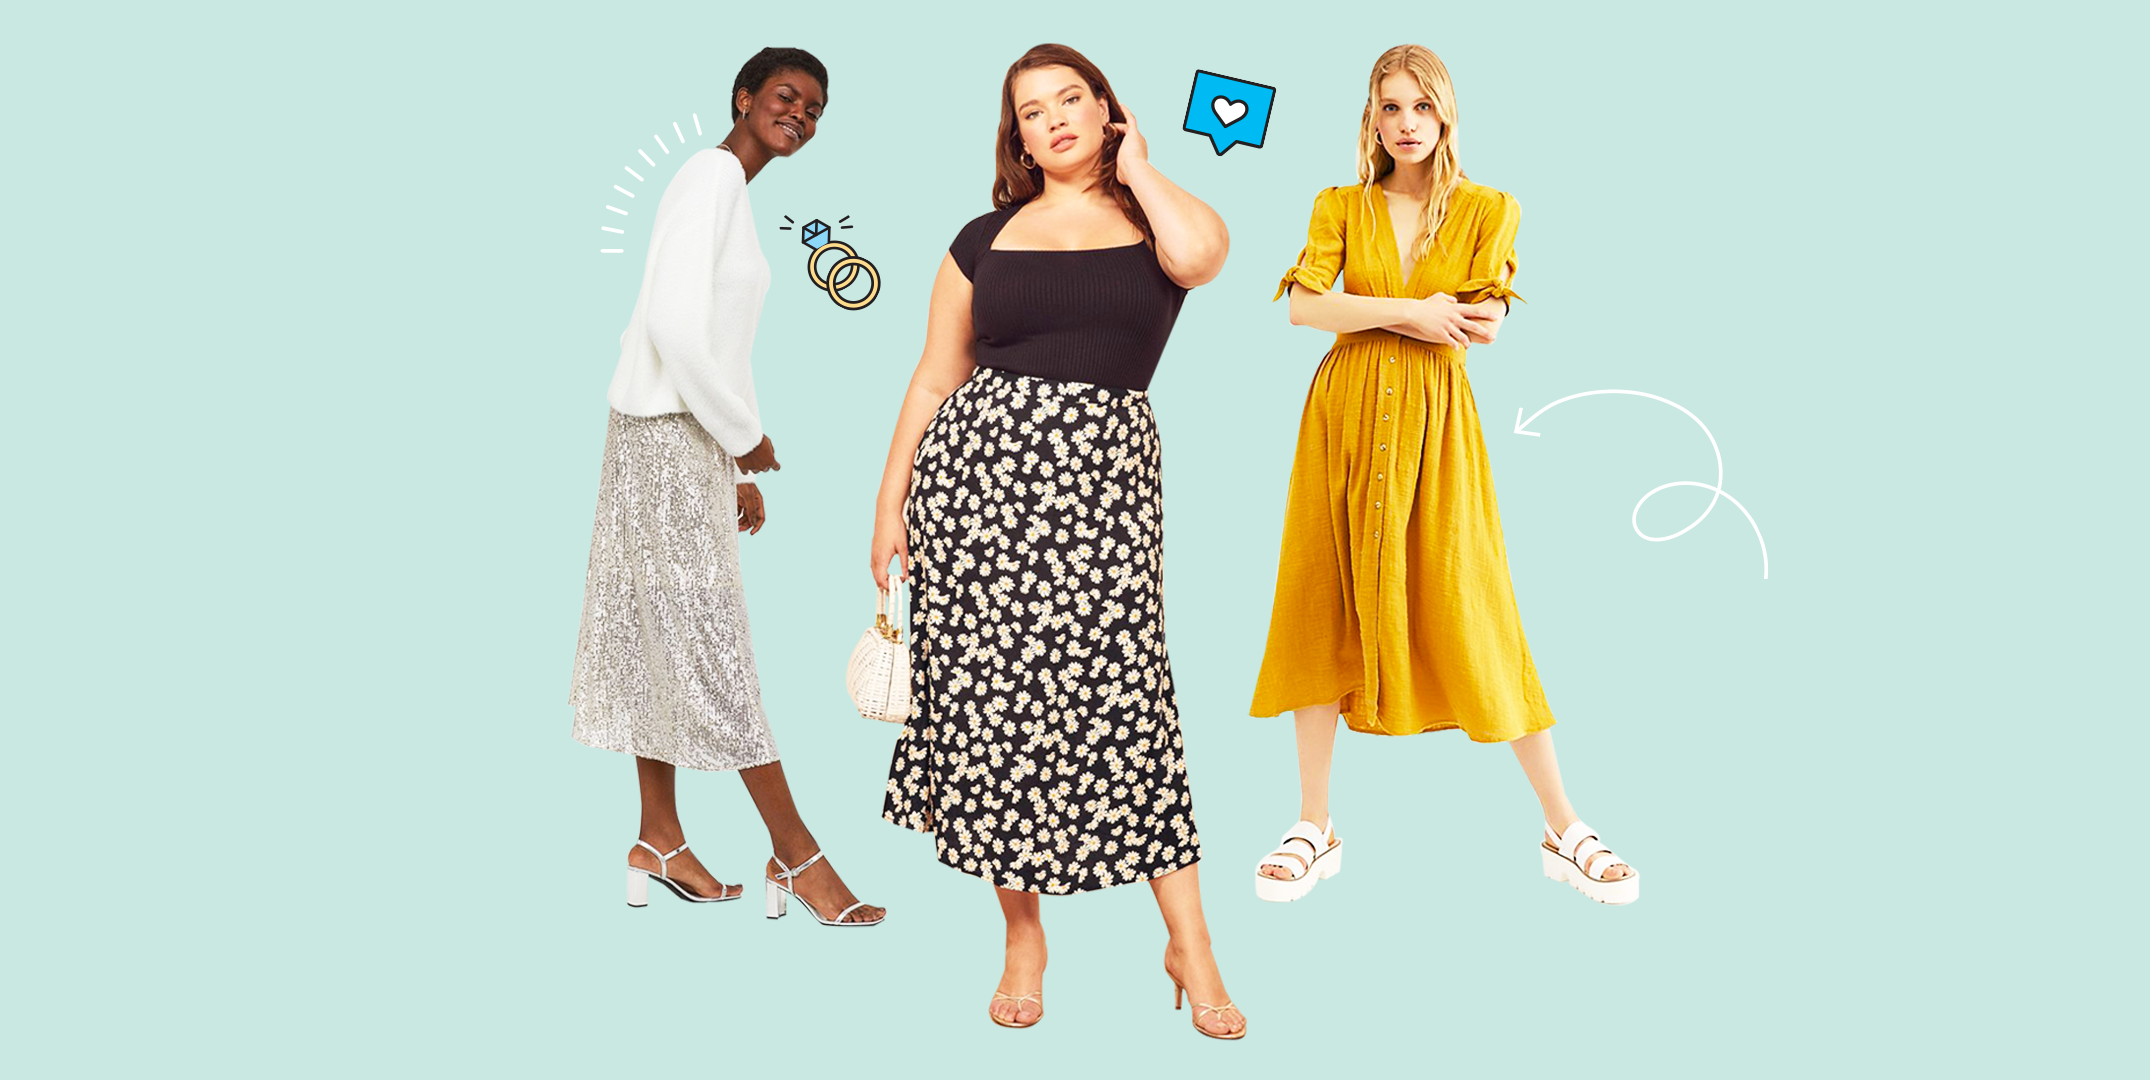 Here's What to Wear to a Bridal Shower, Whether You're the Bride or a Guest